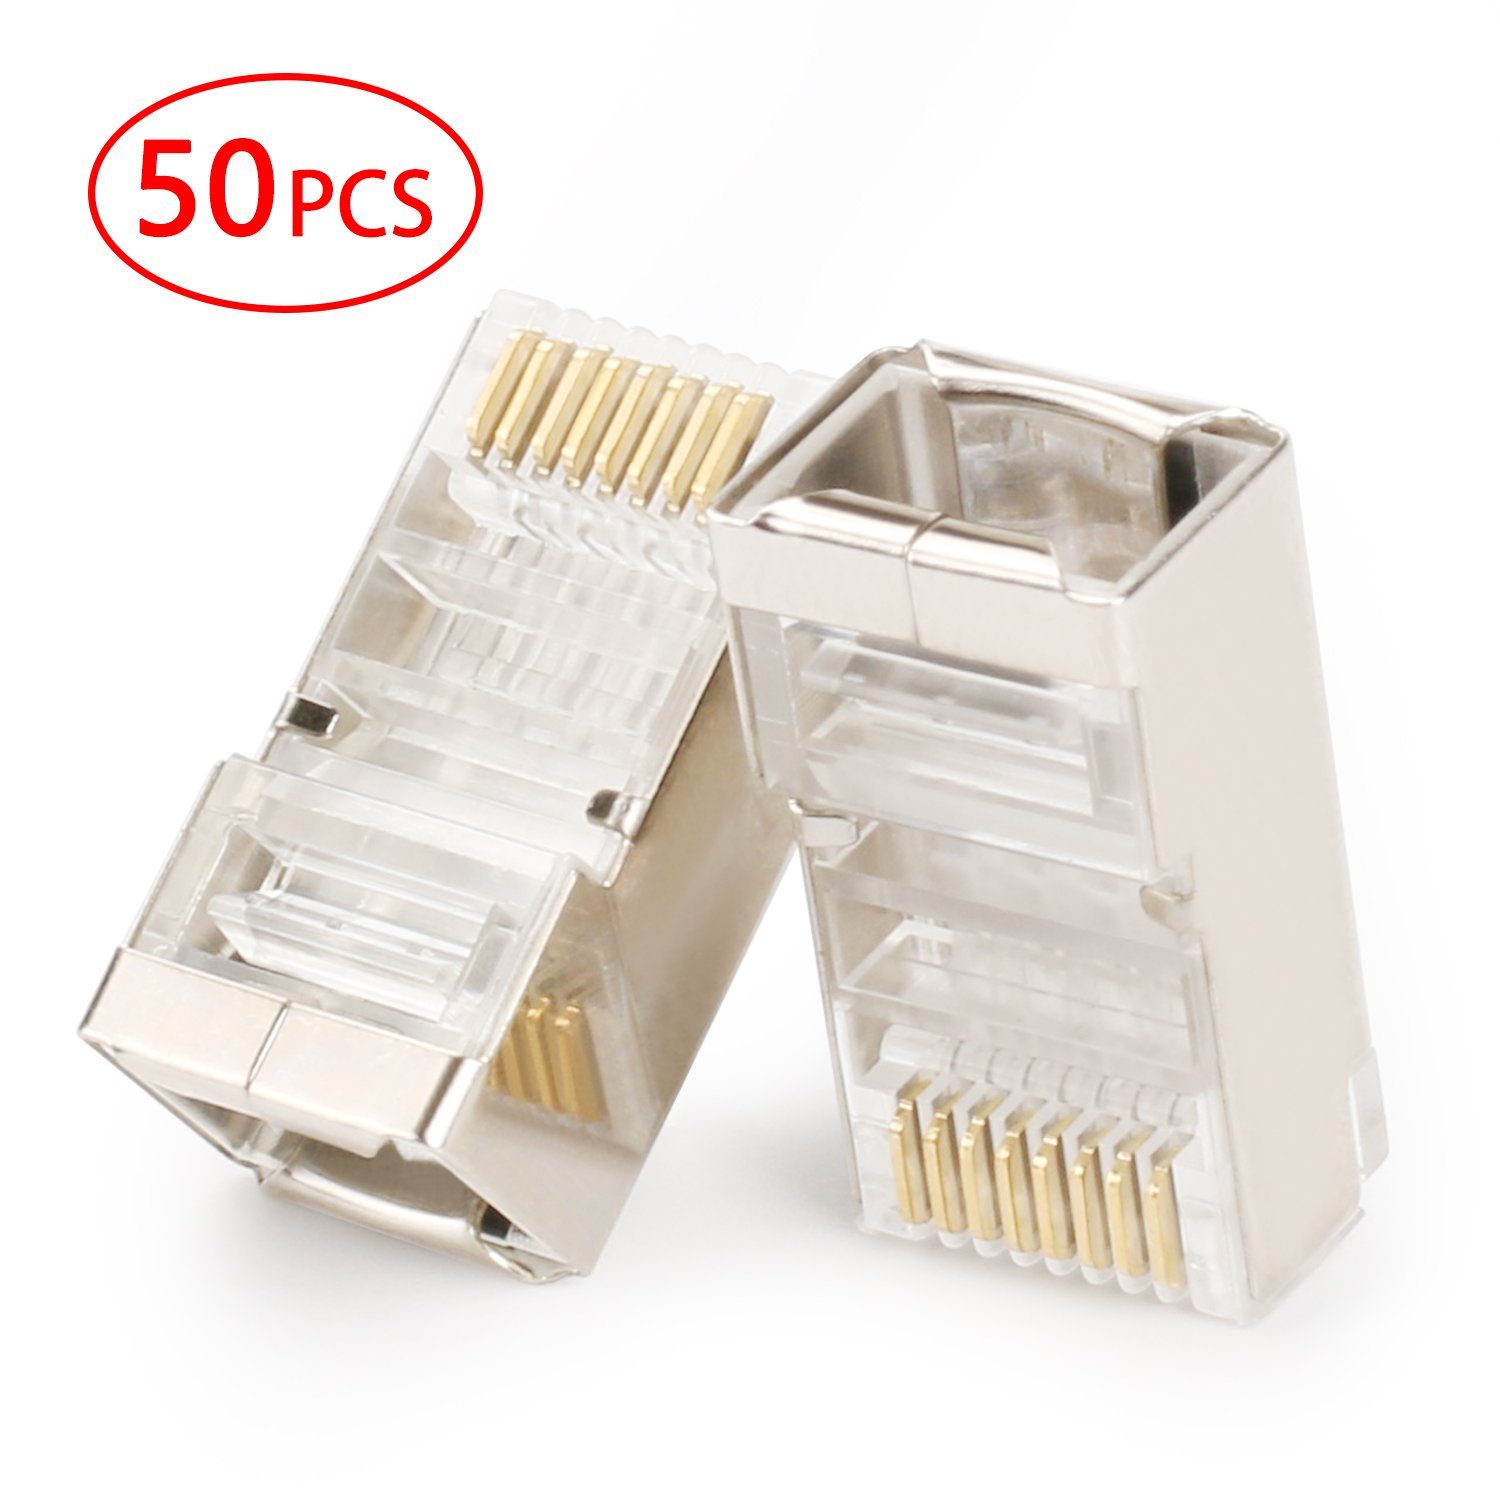 Postta Shielded Rj45 Cat5e Cat6 Crimp Connector 8p8c Stp Plug Wiring Gold Plated Ethernet Network Cable 50 Pieces Home Audio Theater